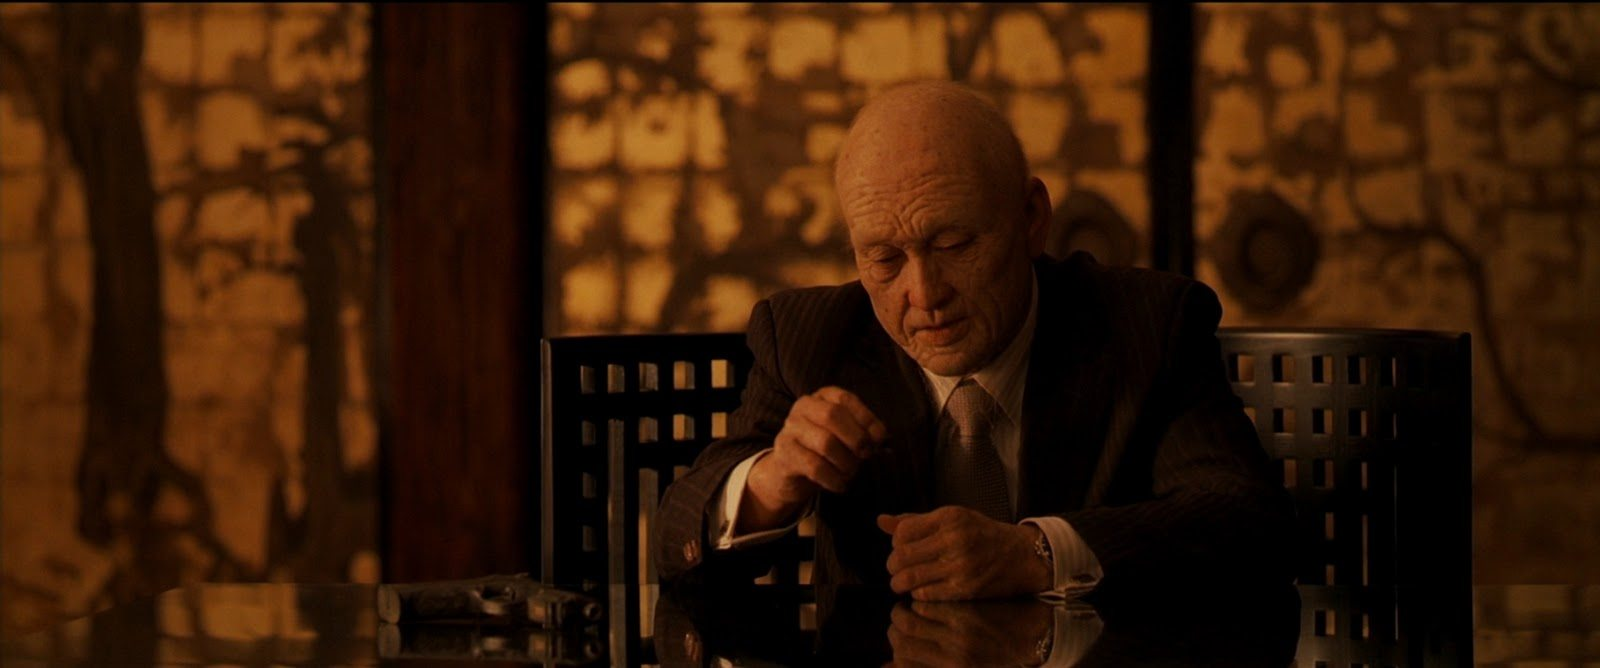 Everything You Missed When You Watched Inception Jon Negroni